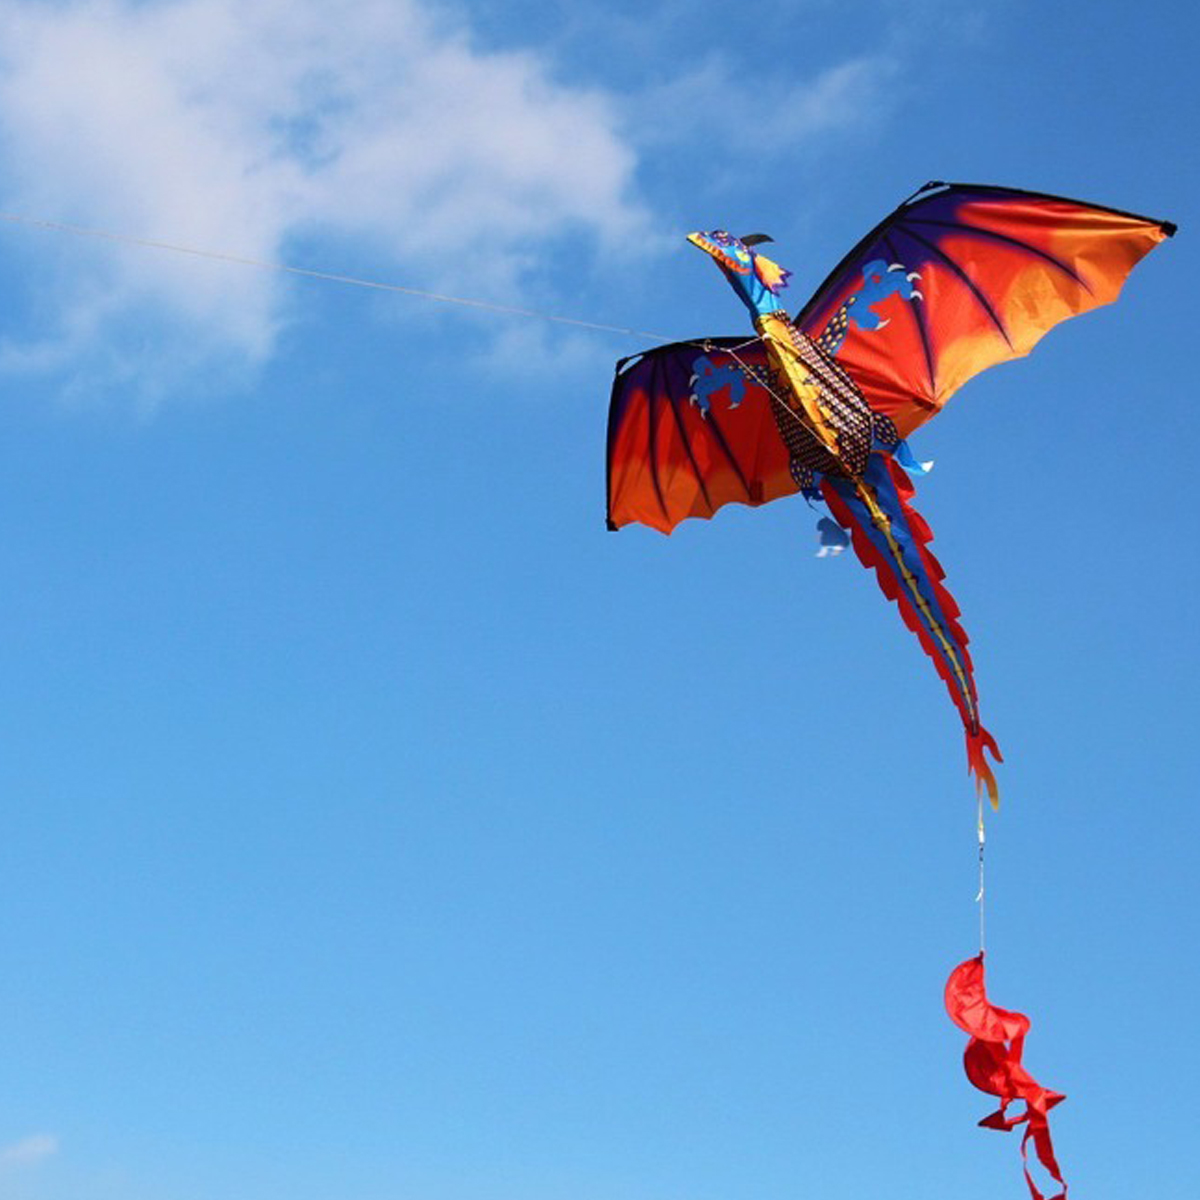 55 Inches Cute Classical Dragon Kite 140cm x 120cm Single Line Kite With Tail